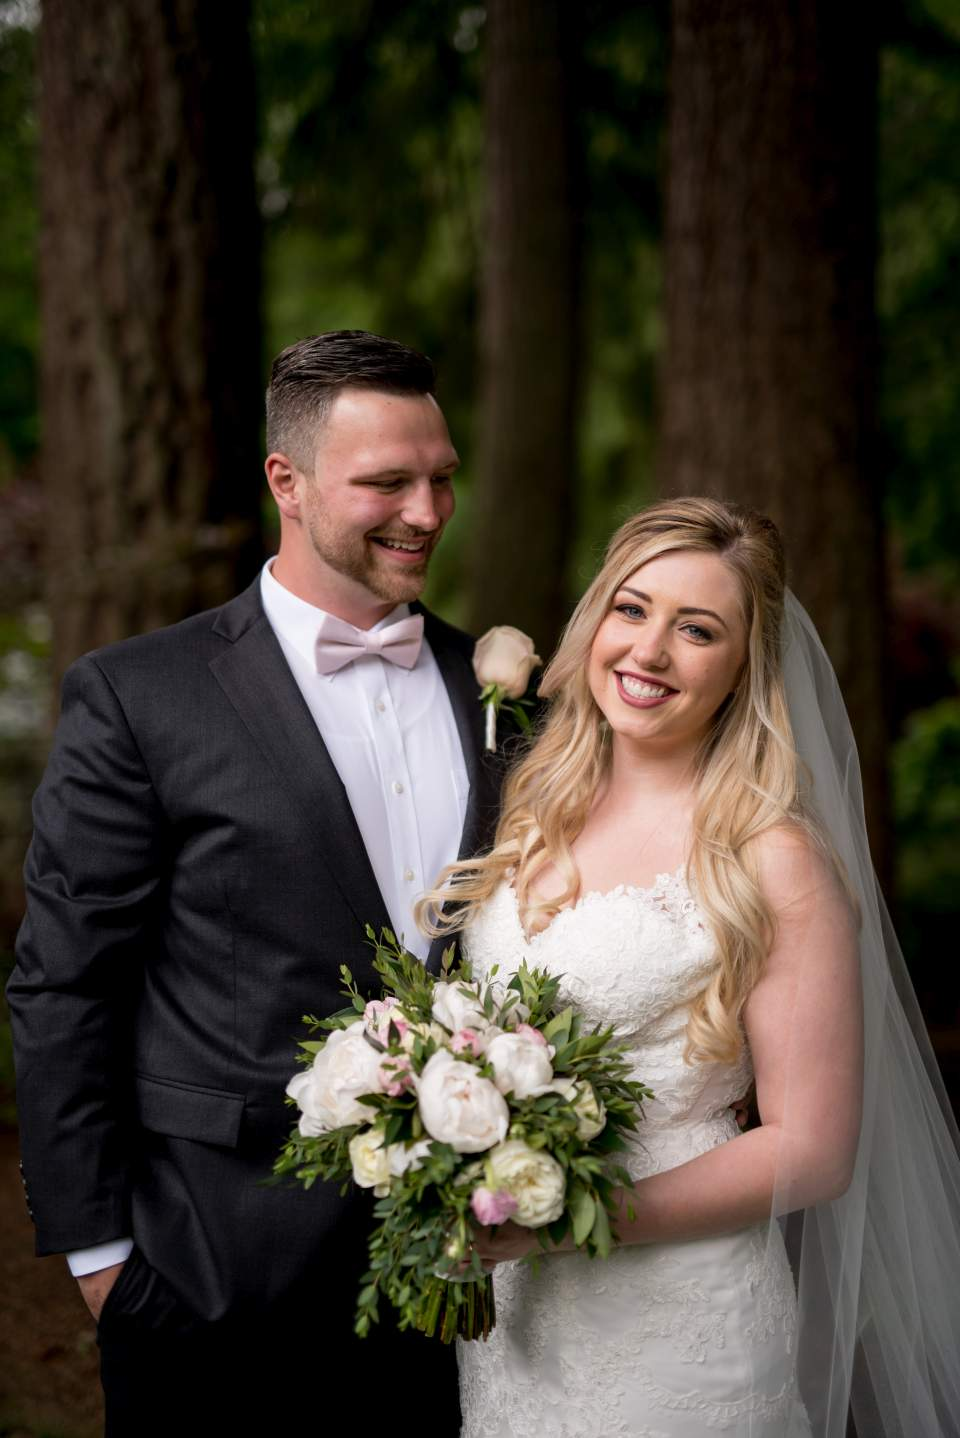 beautiful wedding photos at rock creek gardens